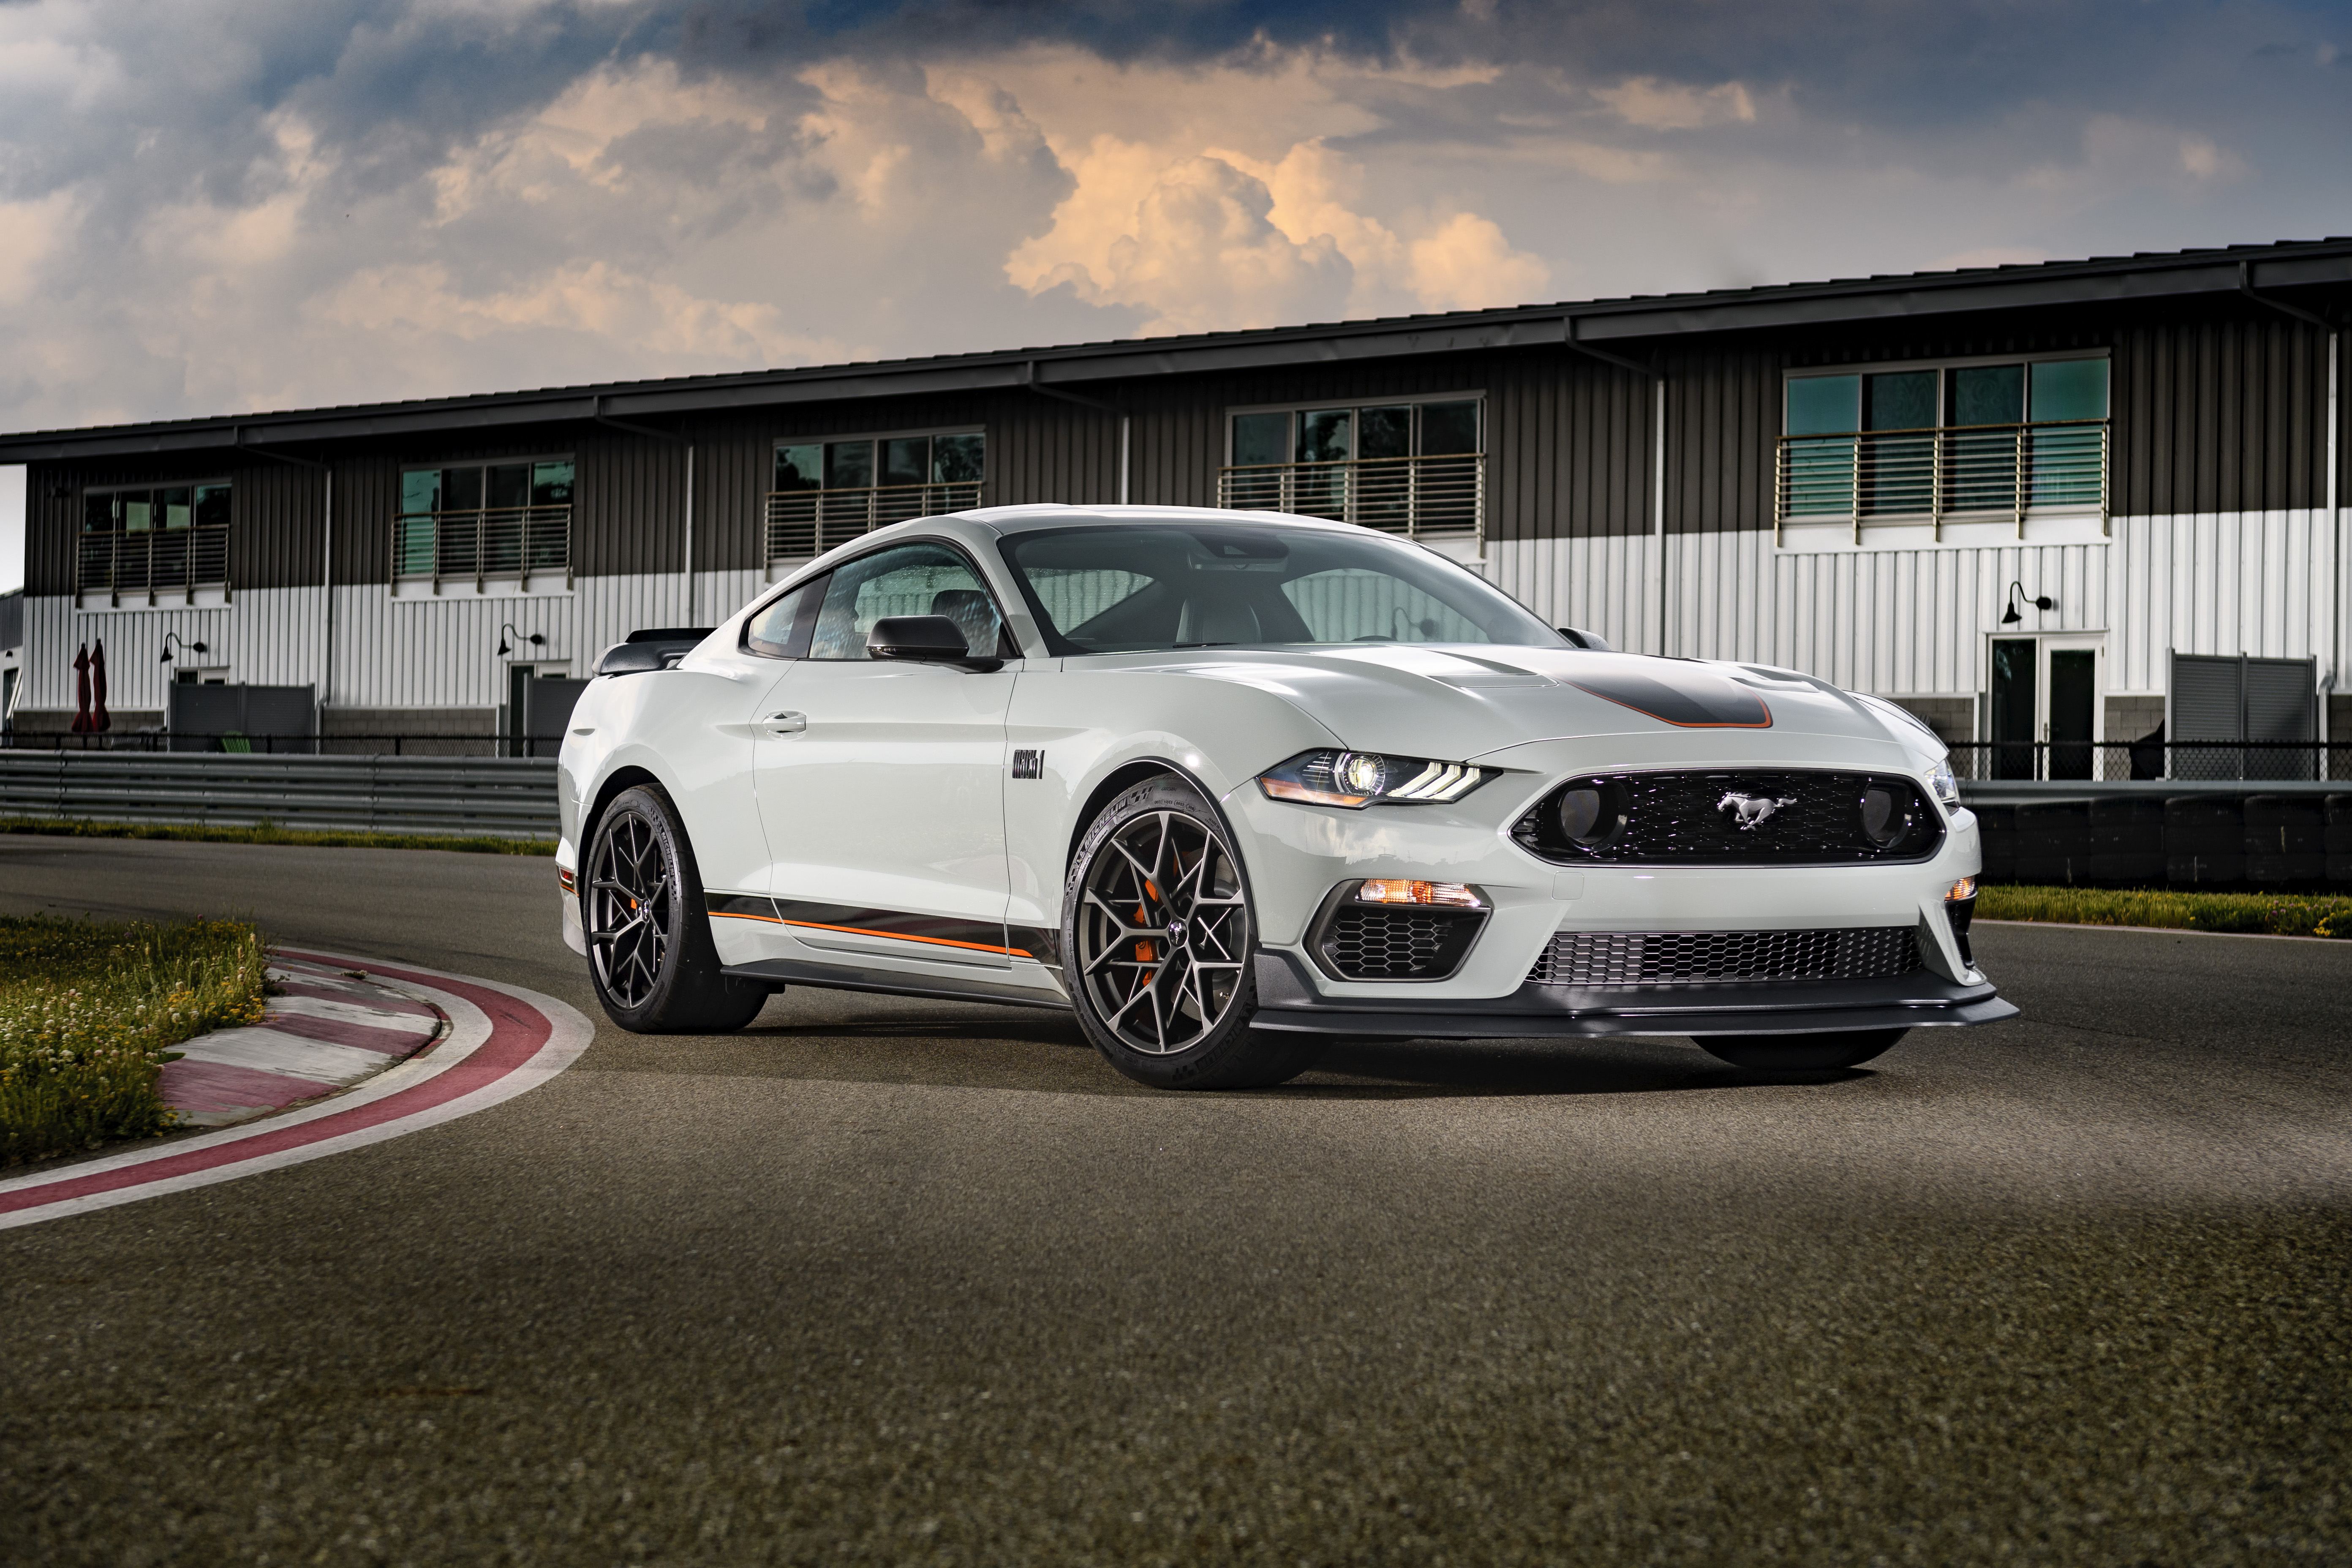 Upcoming Ford cars in India 2021 - Mustang Coupe and Mach-e